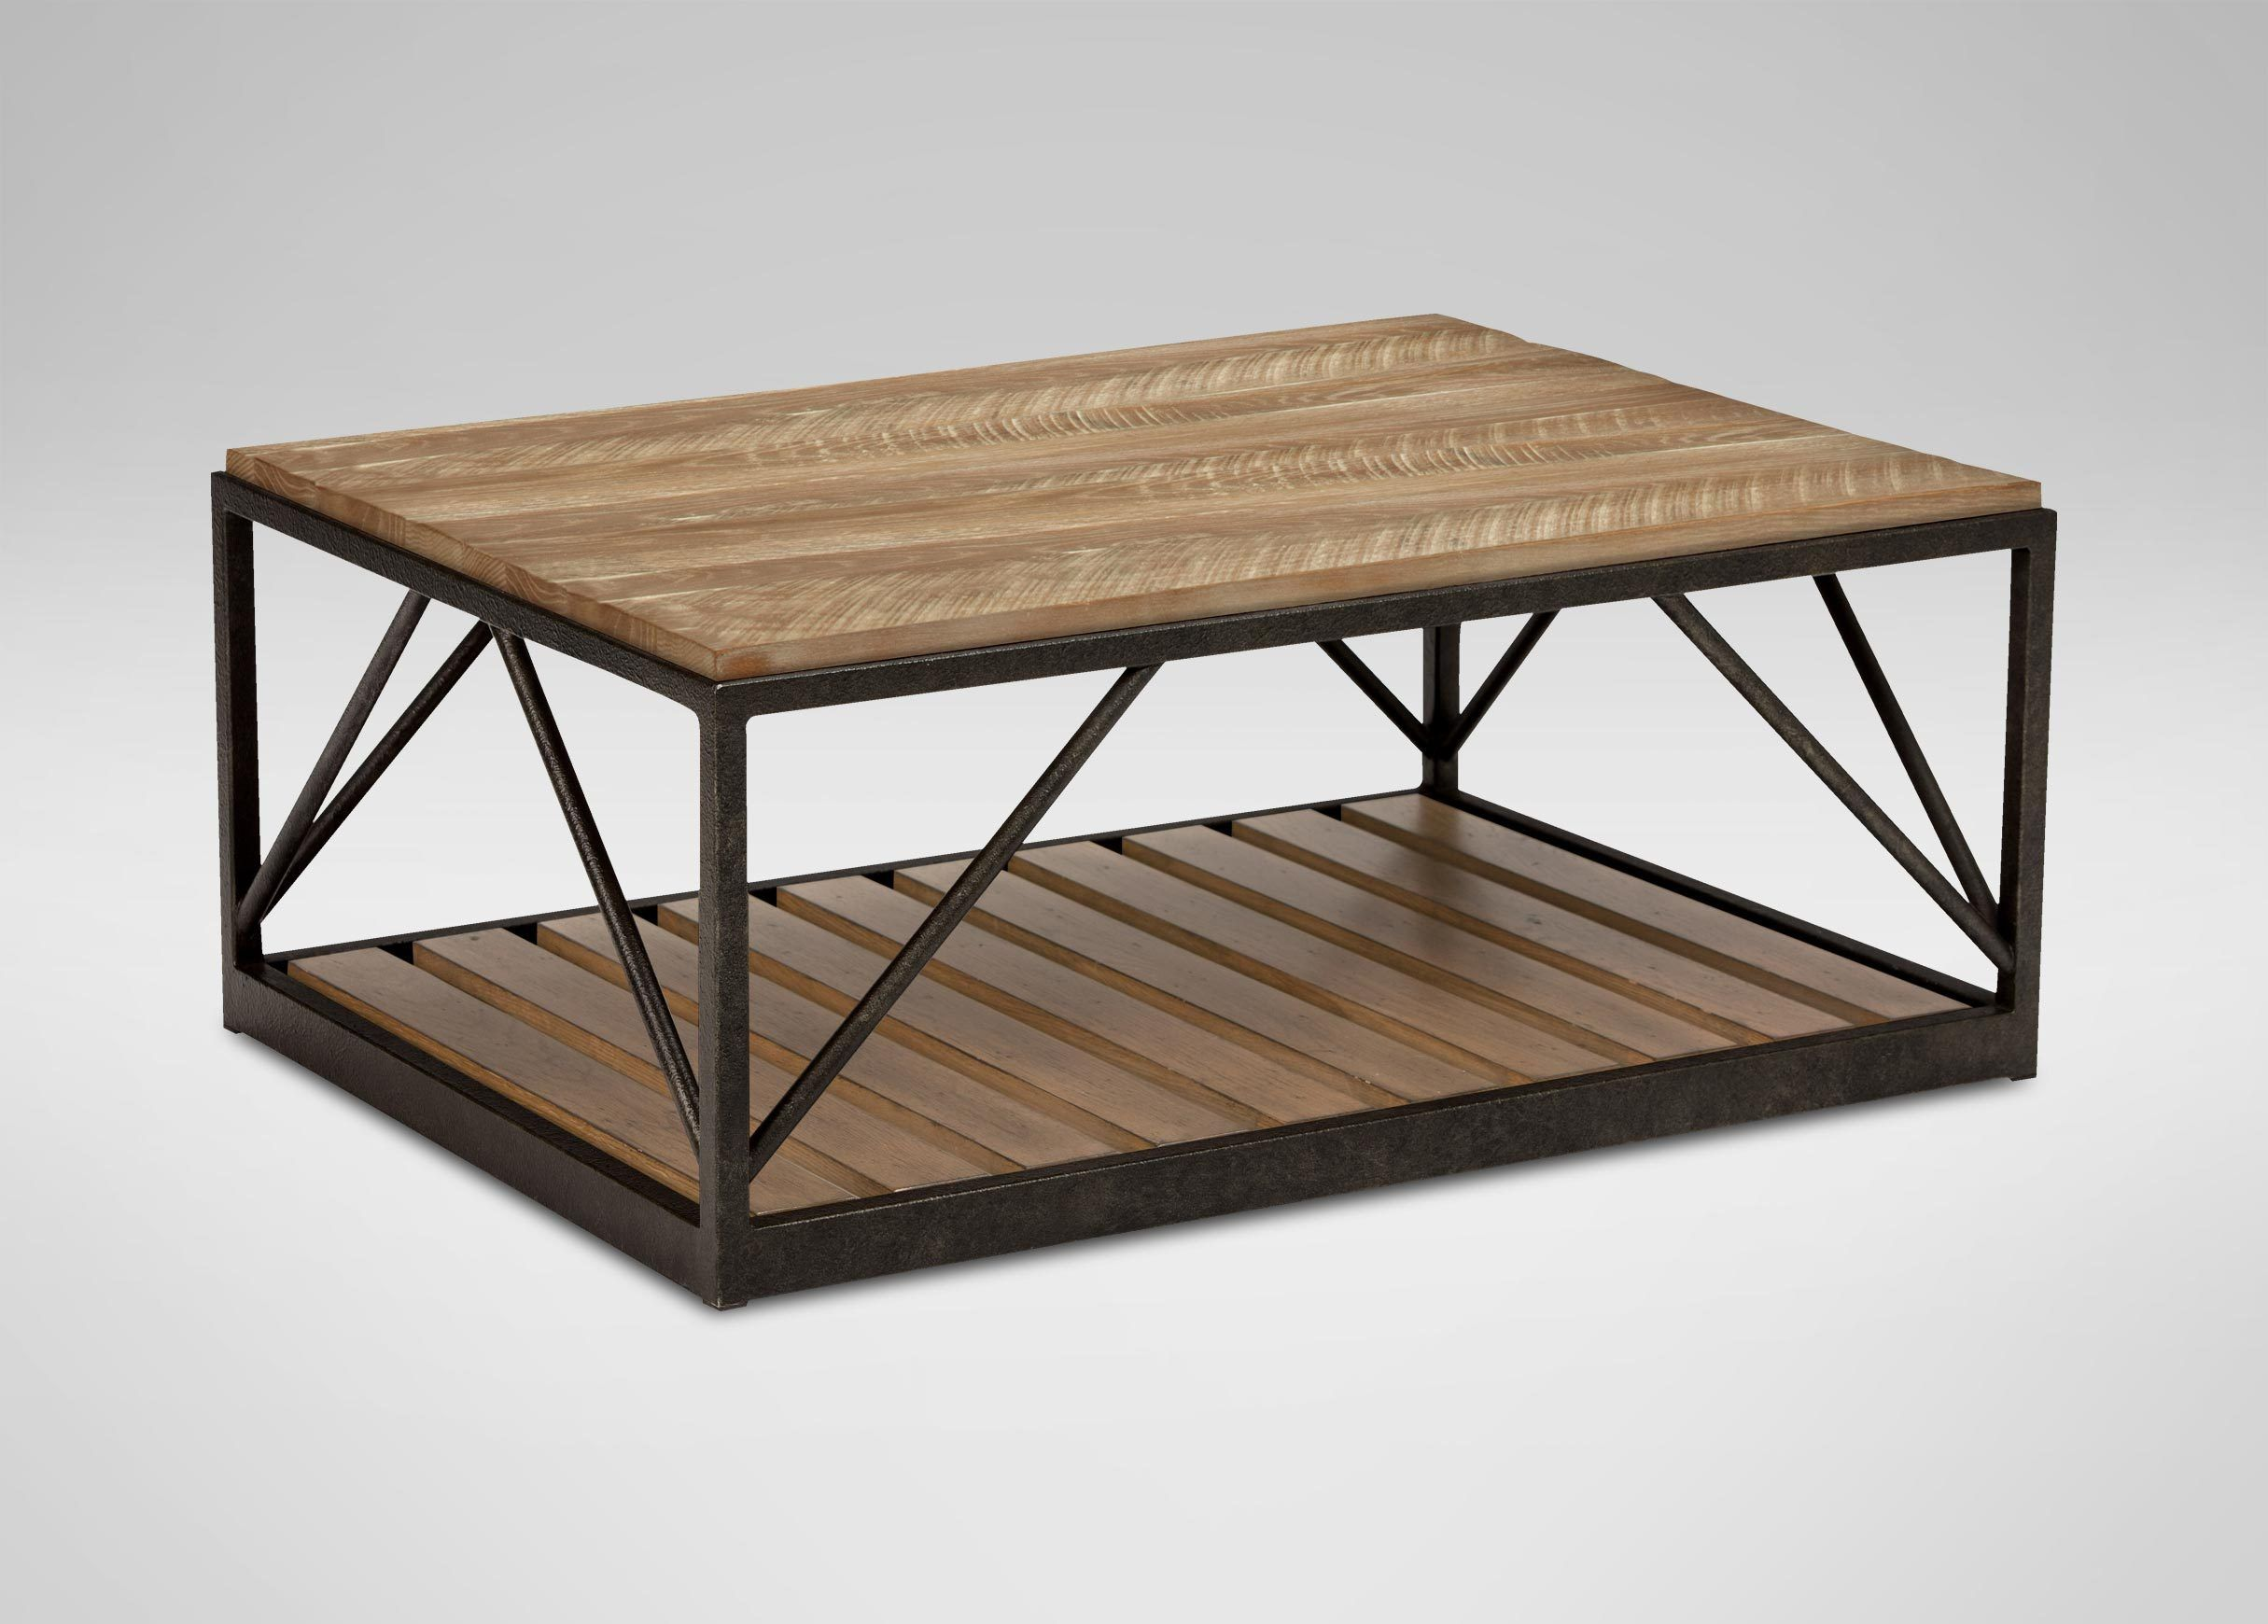 Arabella Coffee Table Capetownmag Lovecapetown Capetownetc Meetsouthafrica Cityof Metal Base Coffee Table Coffee Table Living Room Coffee Table [ 1740 x 2430 Pixel ]